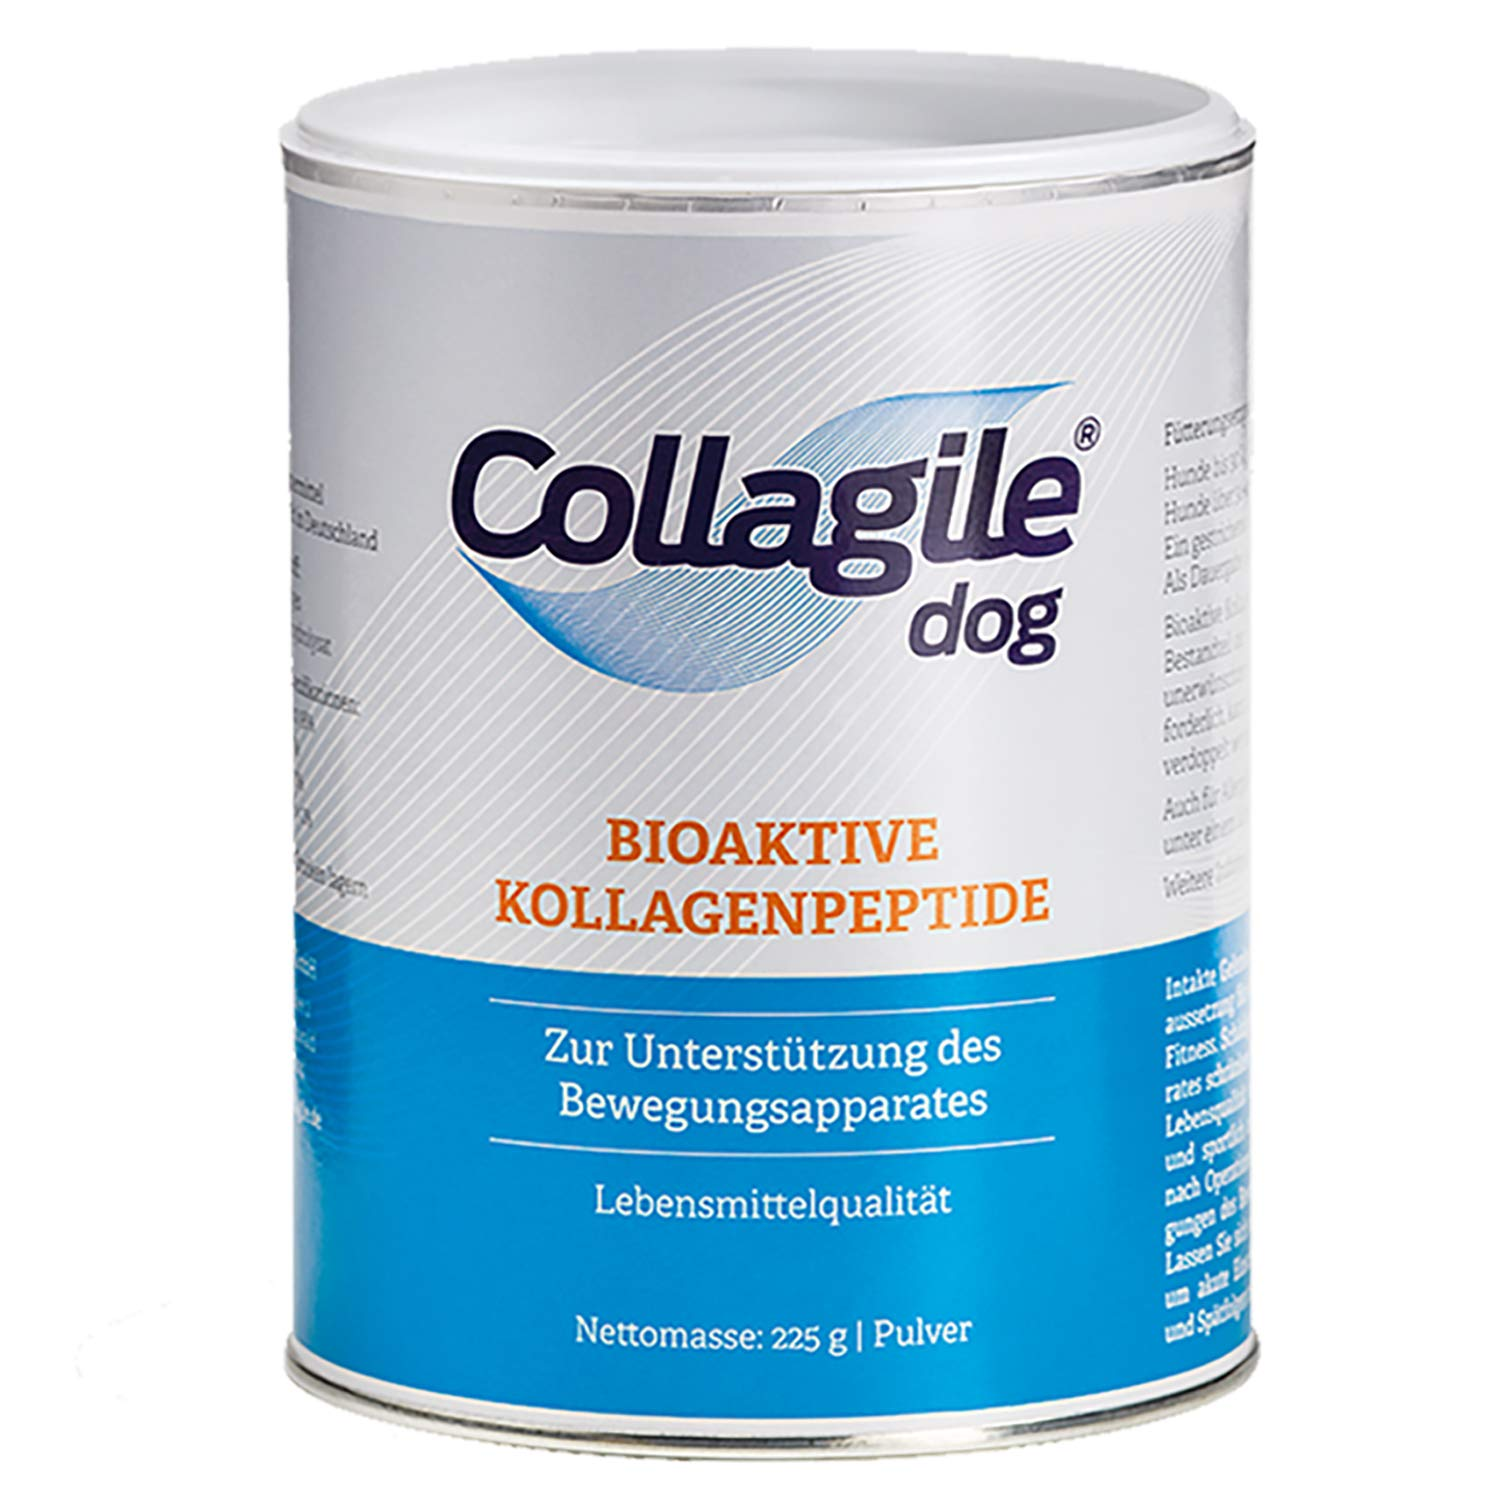 8 x 225g Collagile Dog Supplement for Bone and Ligaments Food Grade Bioactive Collagen Peptides